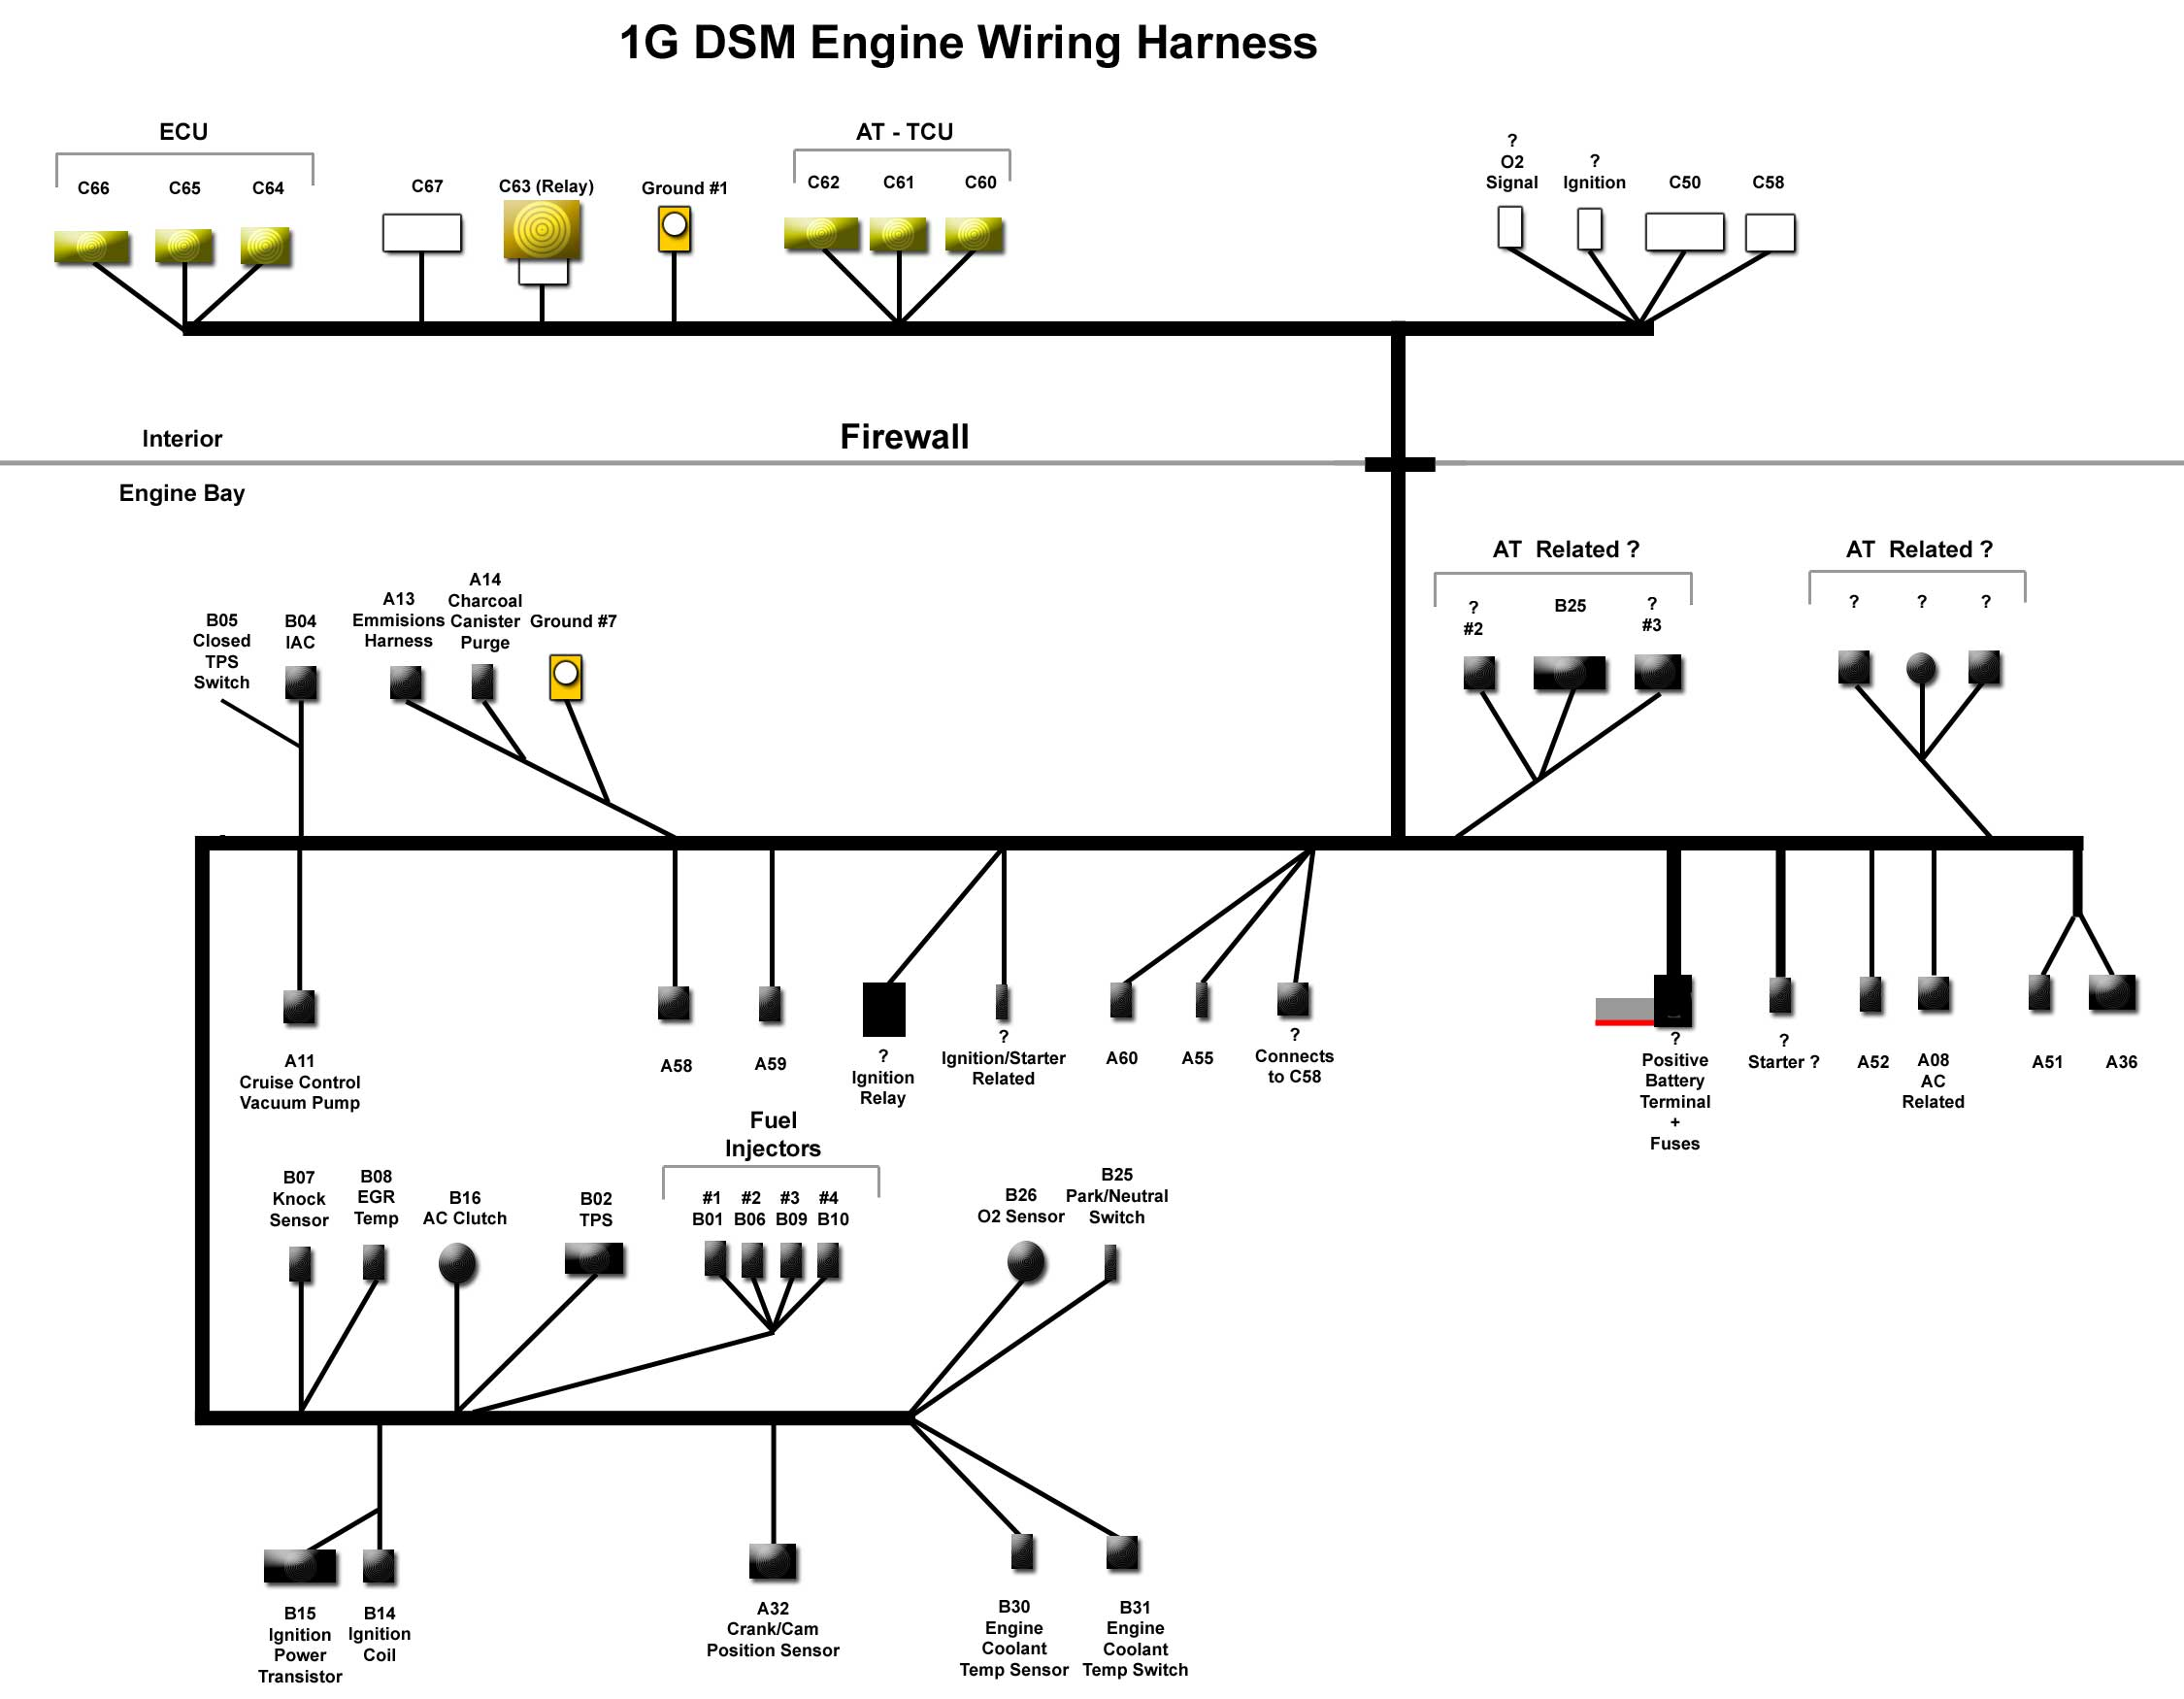 1G DSM EngineHarness 1gb dsm 4g63 turbo wiring harness diagram wiring harness diagram at creativeand.co